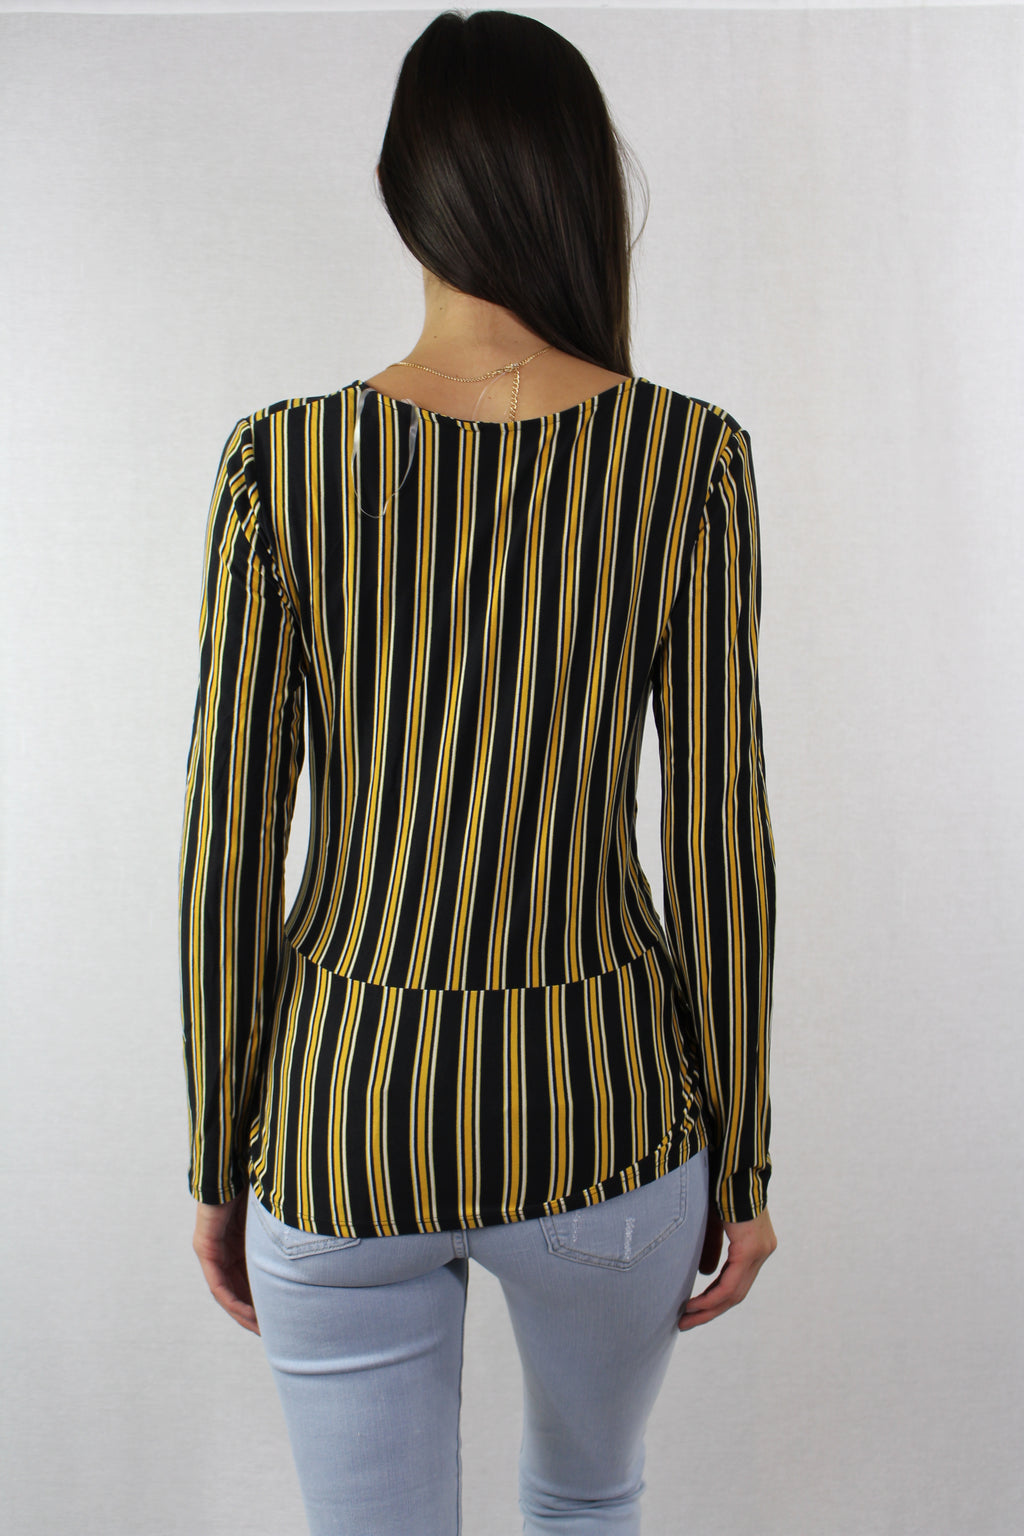 Women's Long Sleeve striped Top with v neckline and attached tank